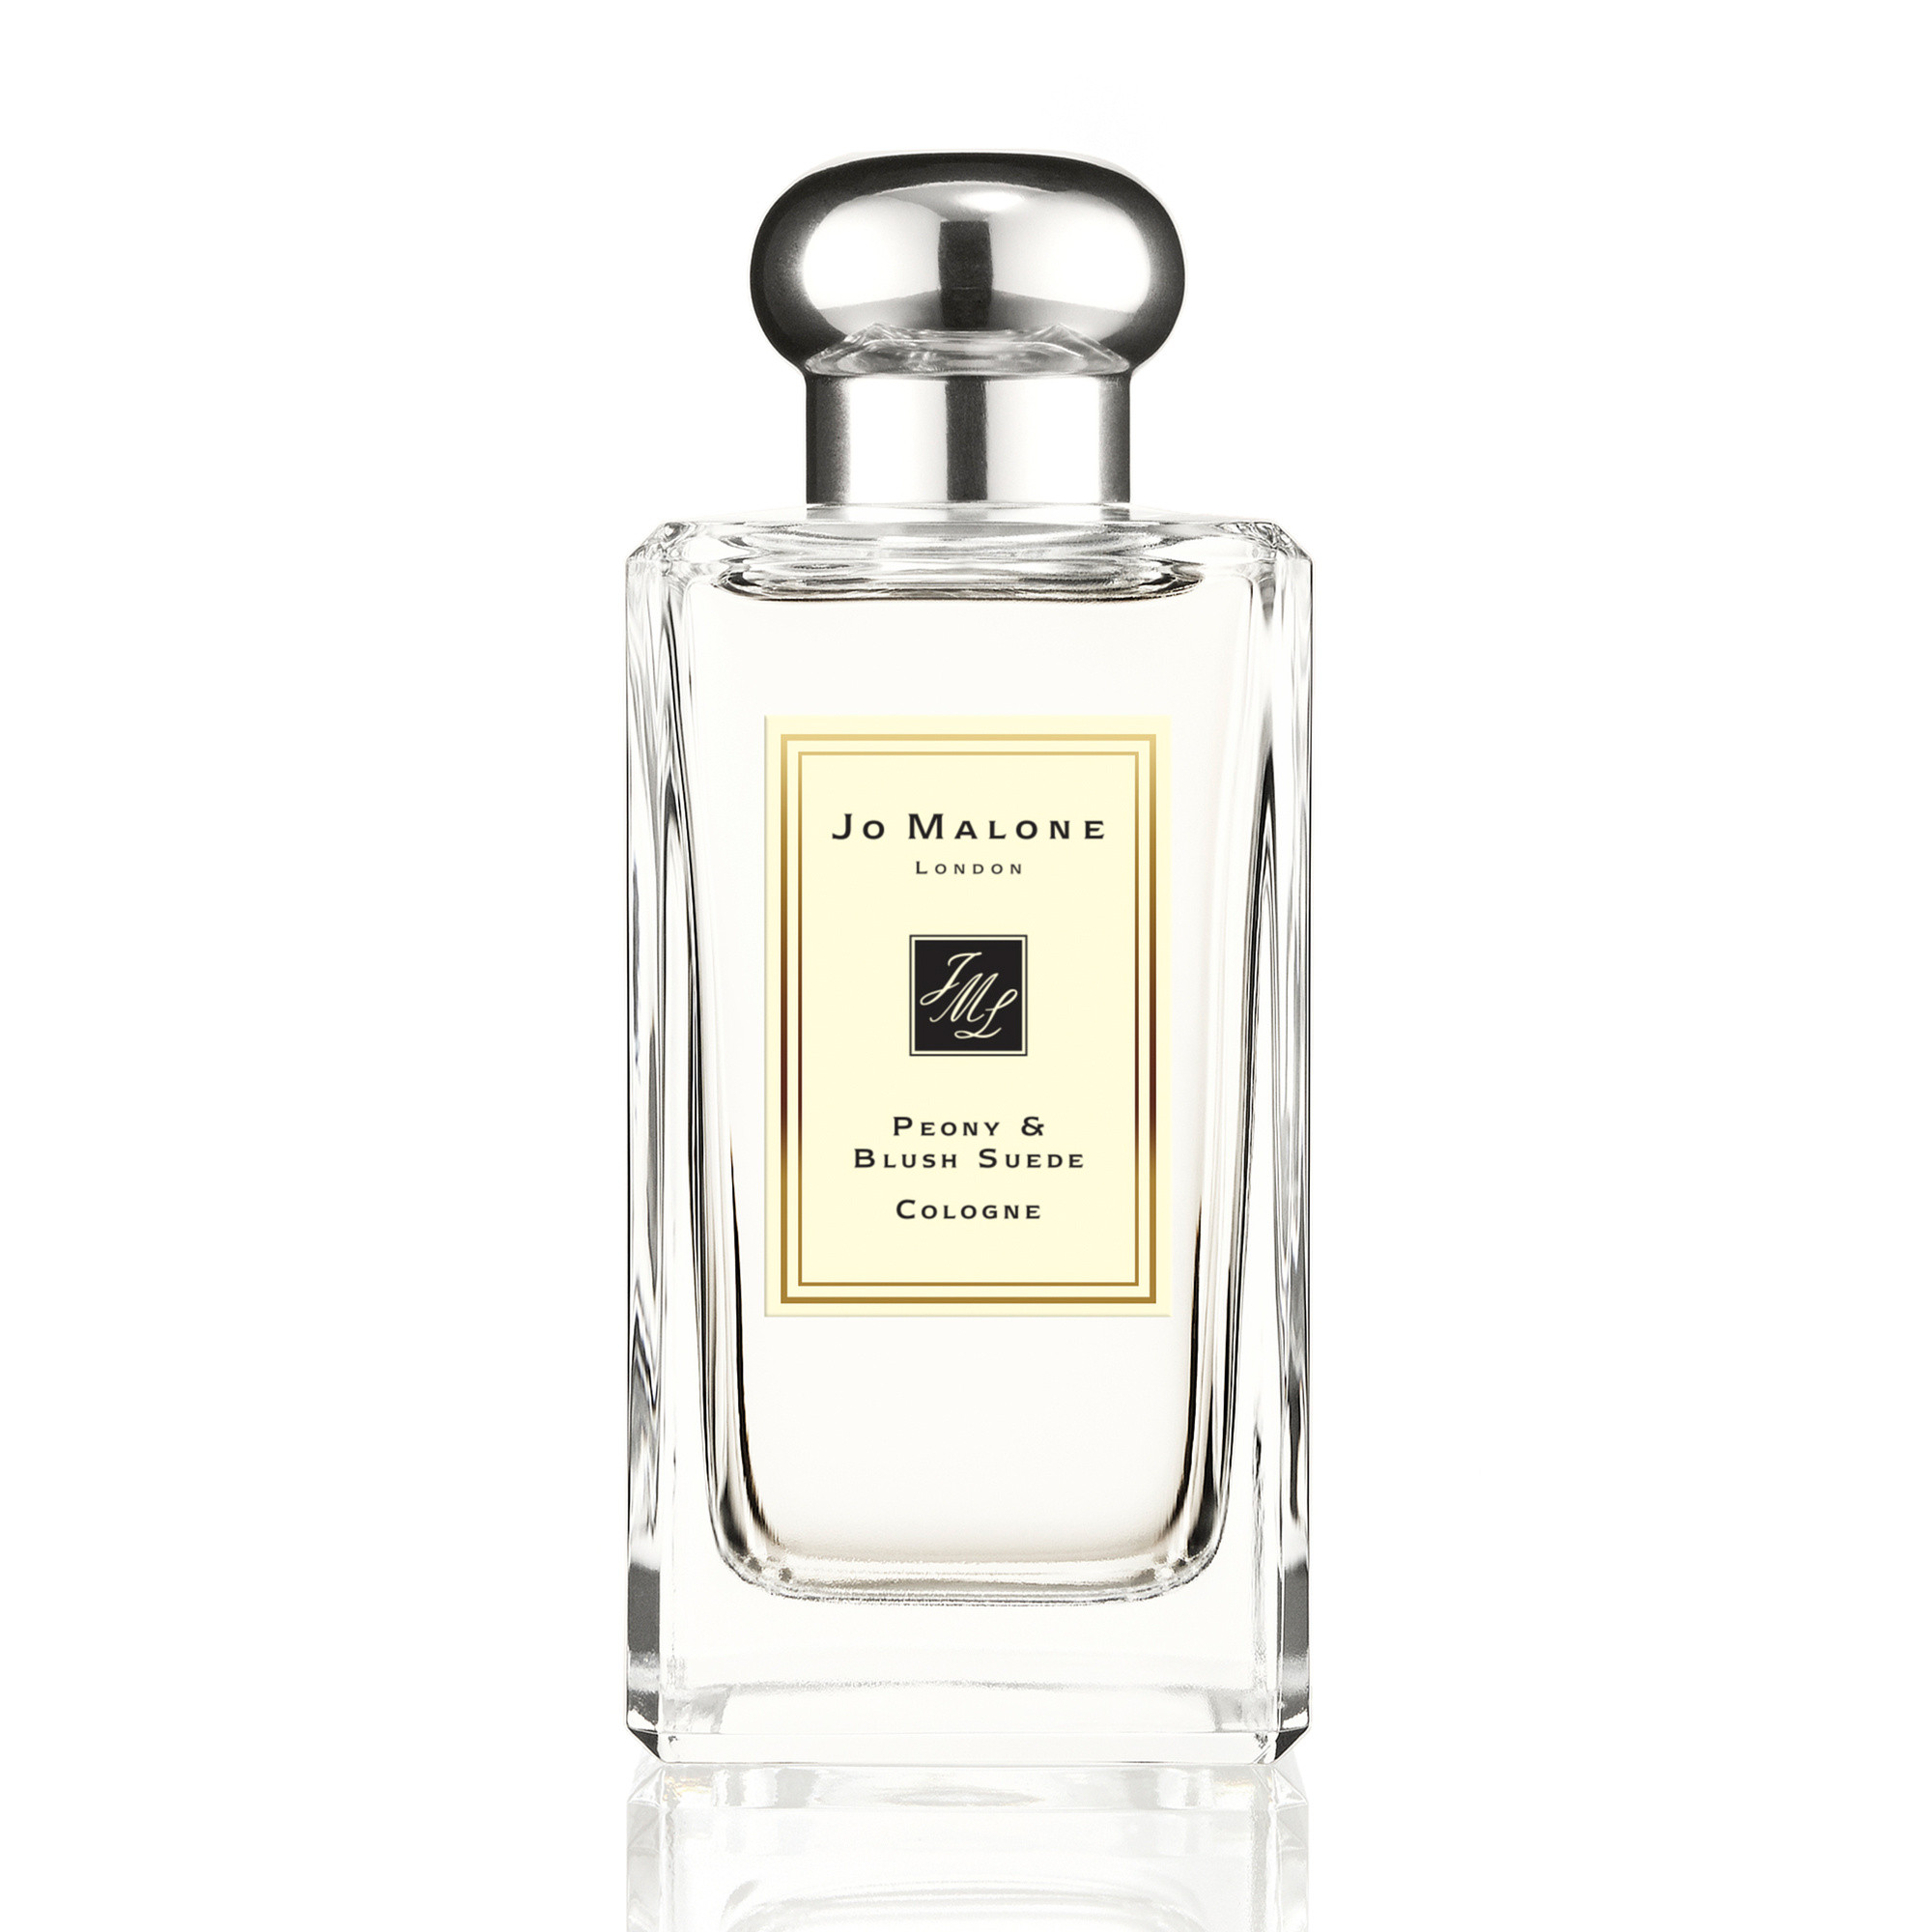 Jo Malone London peony & blush suede cologne 100 ml, Beige, large image number 0